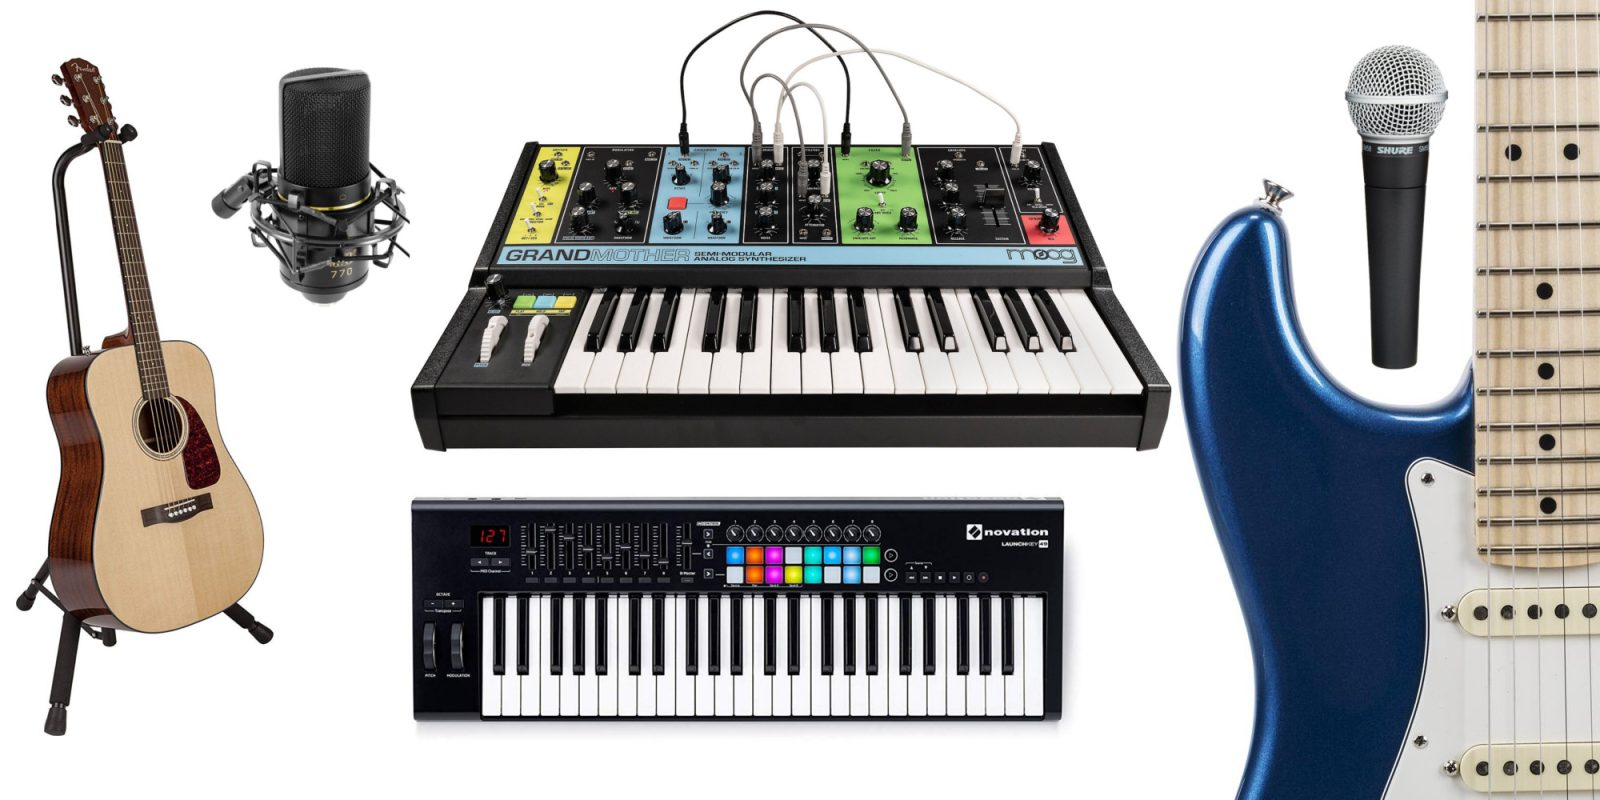 Early Black Friday audio recording deals from $5: keyboard